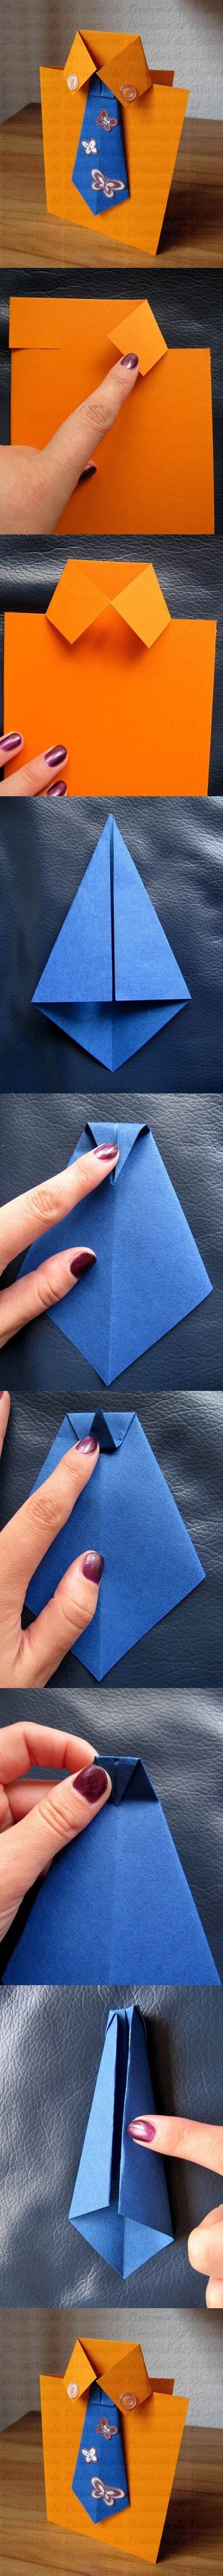 Diy tie and shirt greeting card cards pinterest facebook